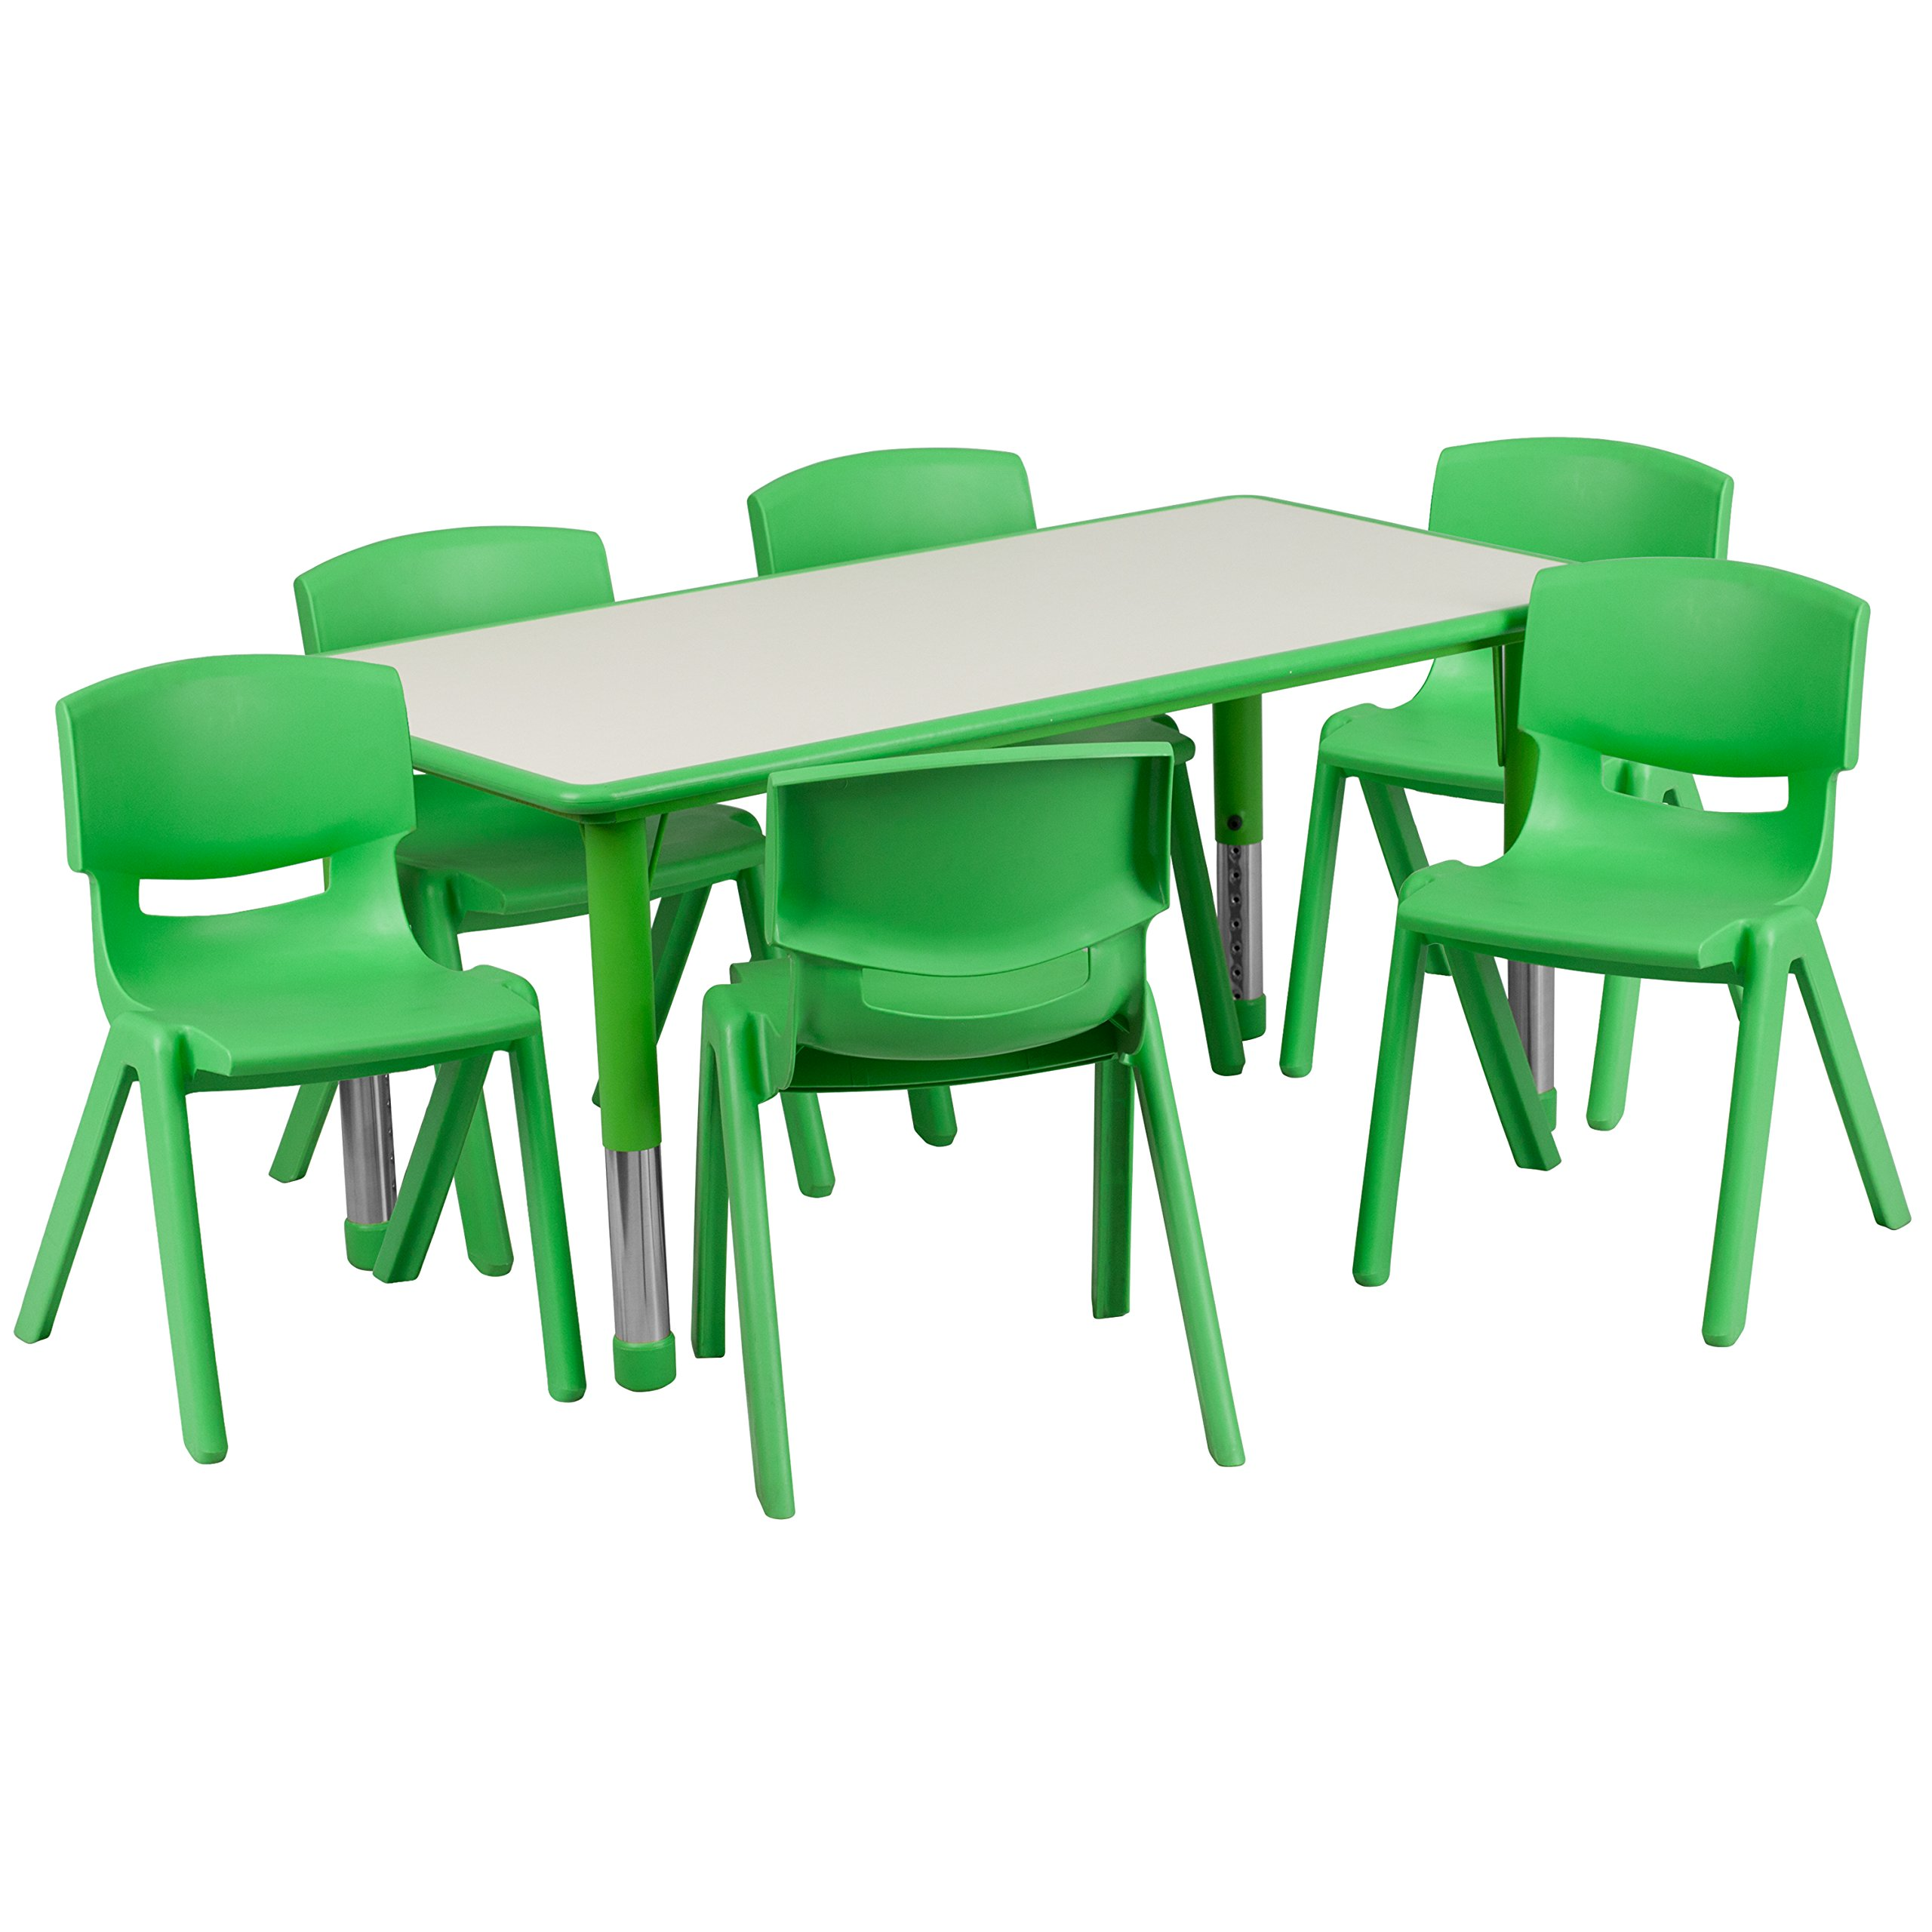 Flash Furniture 23.625''W x 47.25''L Rectangular Green Plastic Height Adjustable Activity Table Set with 6 Chairs